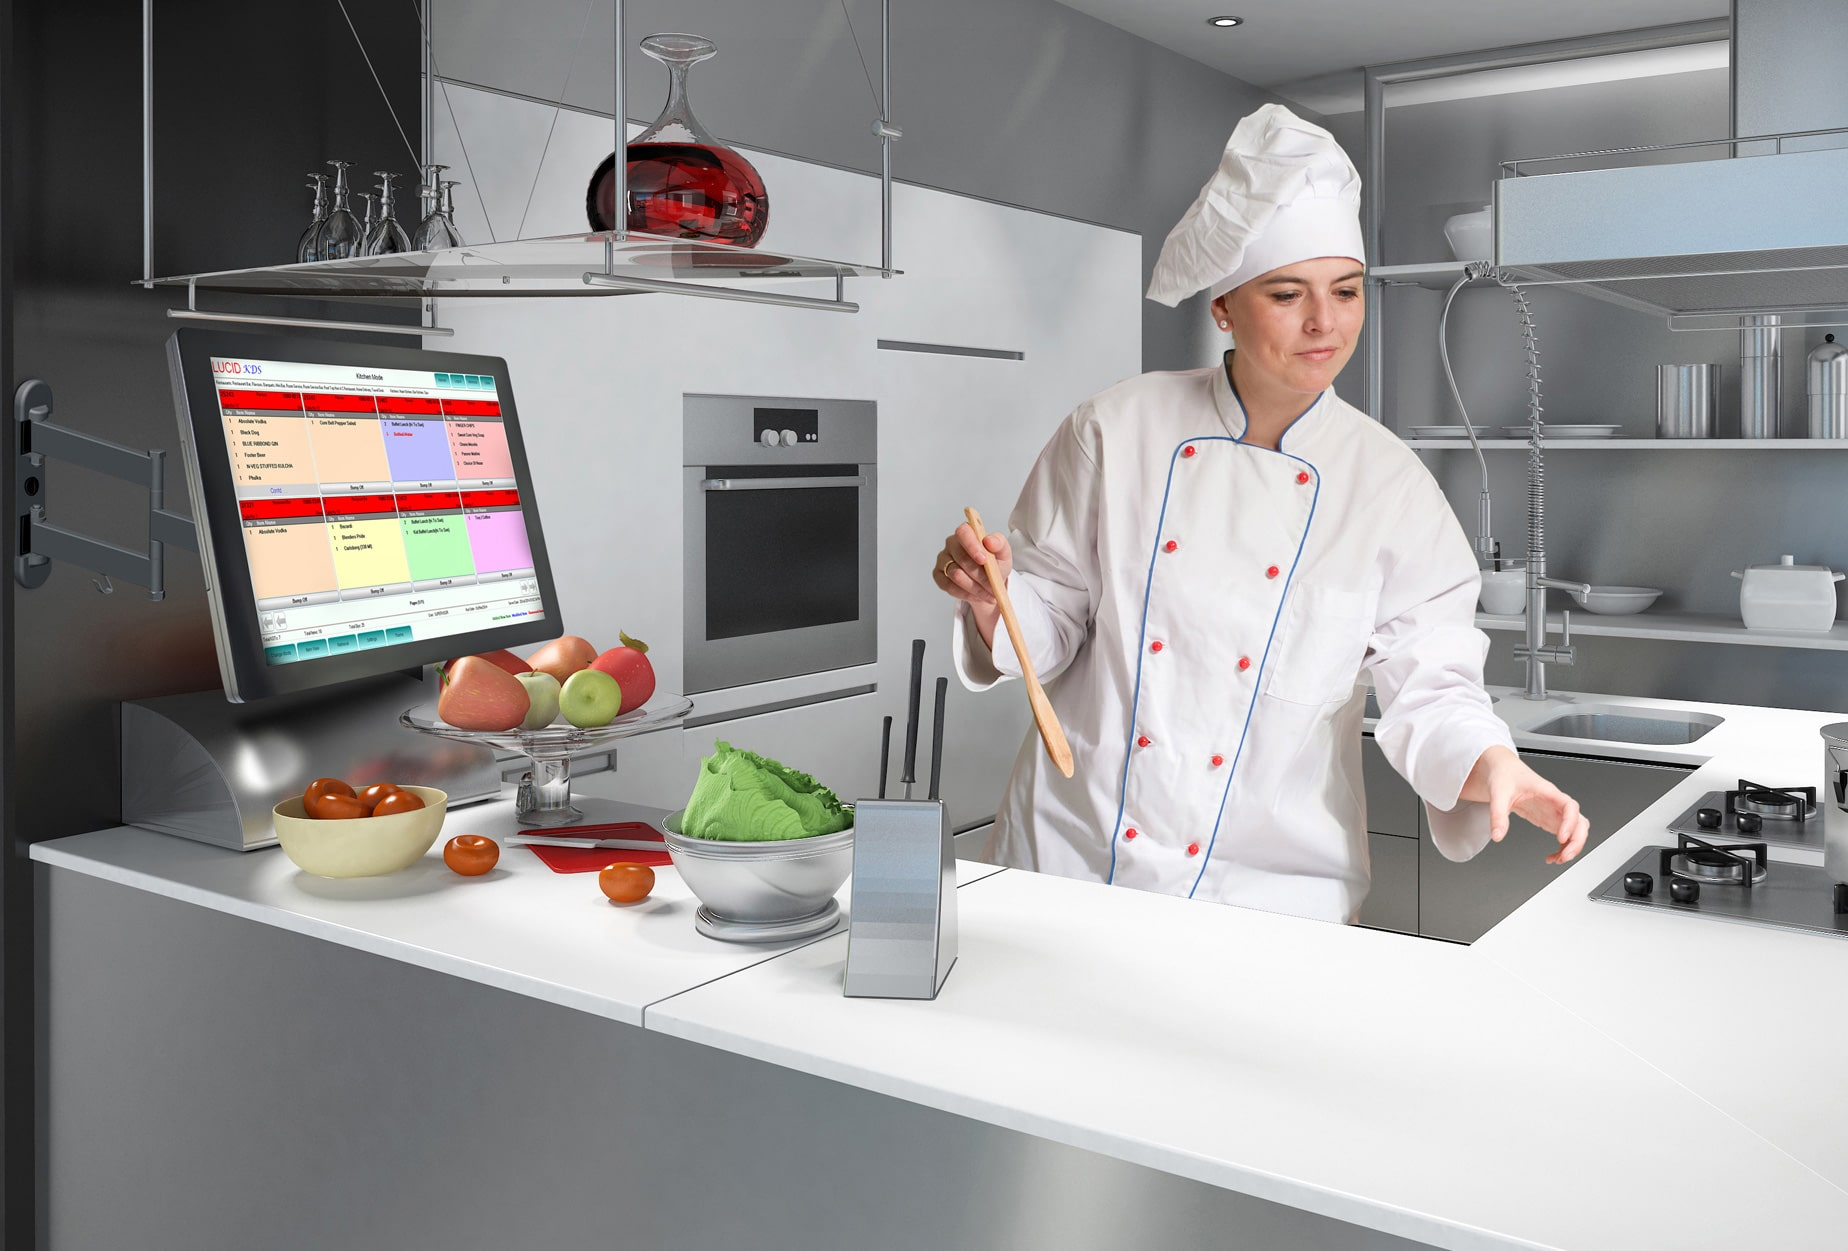 Kitchen Display System for Restaurants